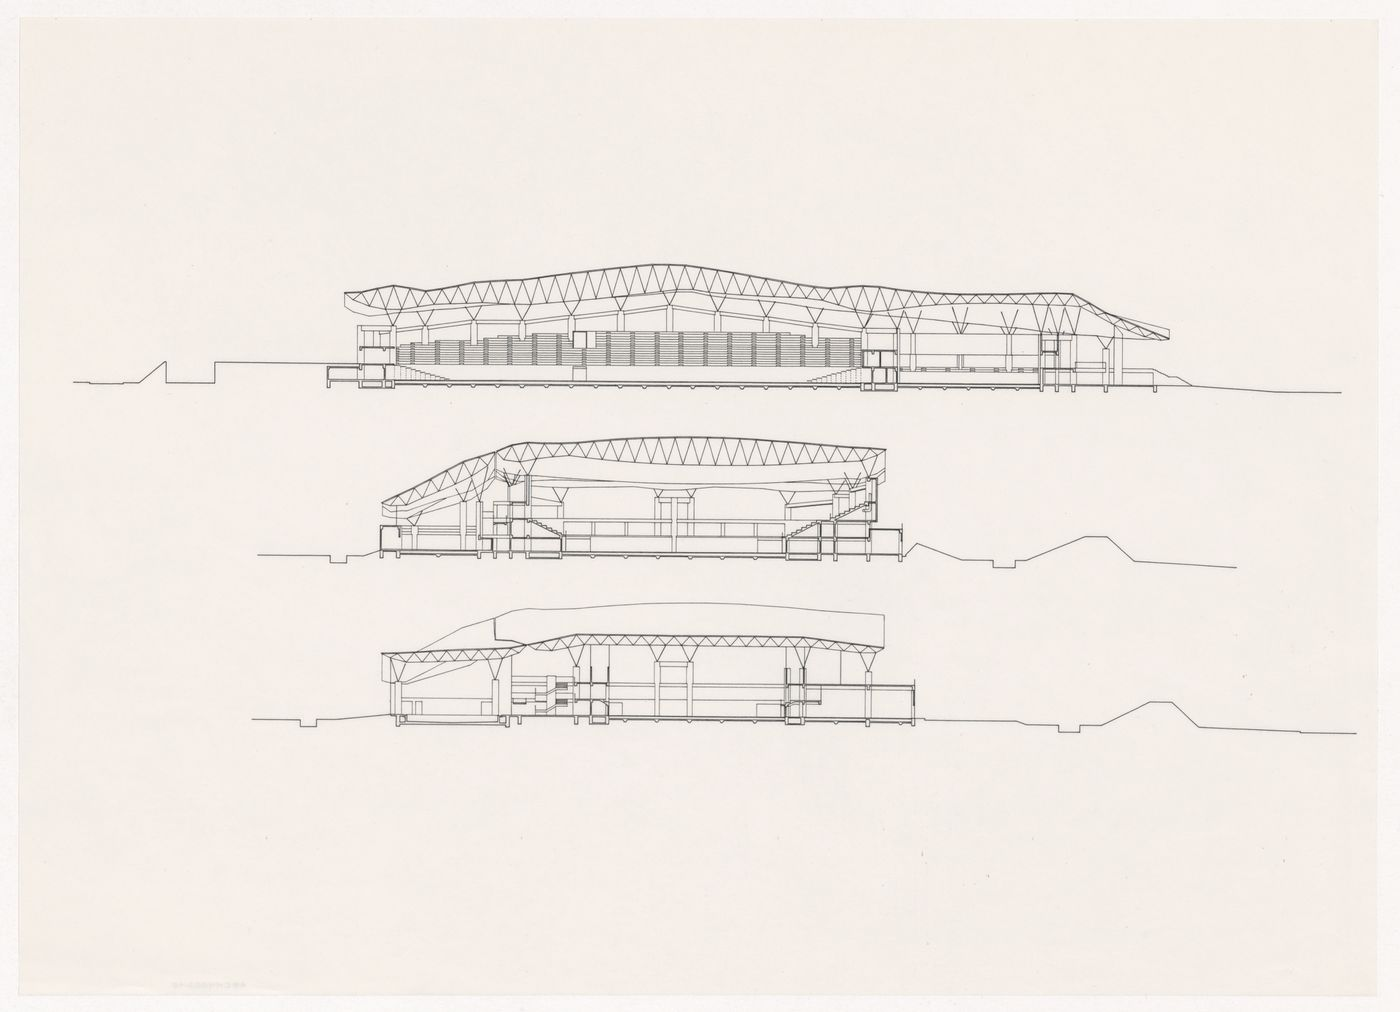 Sections for Odawara Municipal Sports Complex, Odawara, Japan